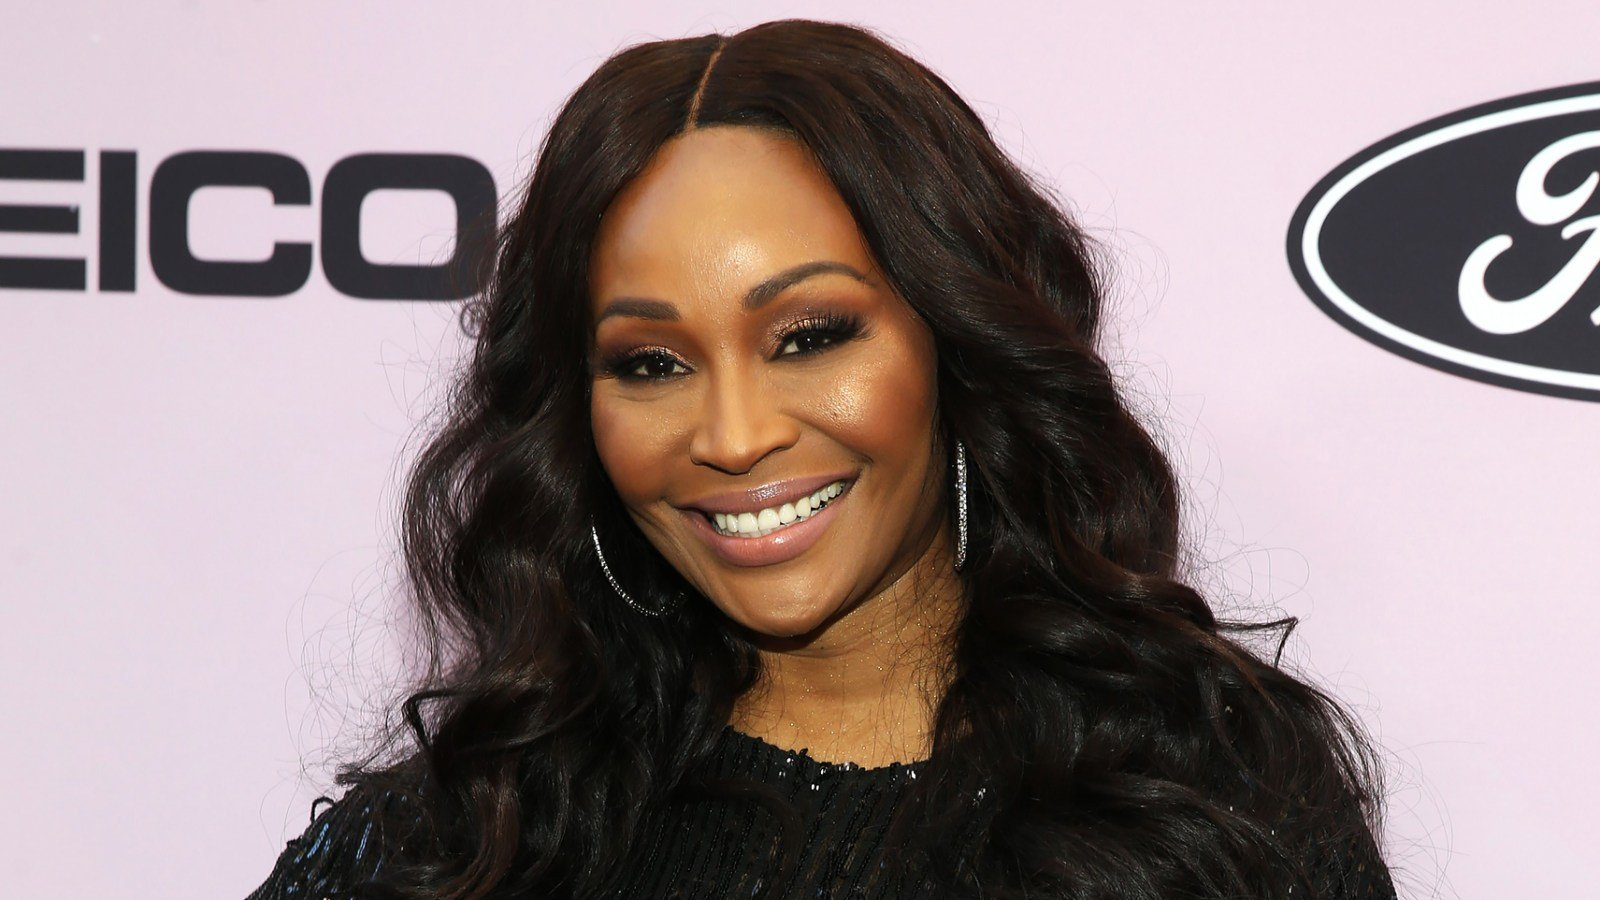 Cynthia Bailey Looks Amazing In This Animal Print Dress